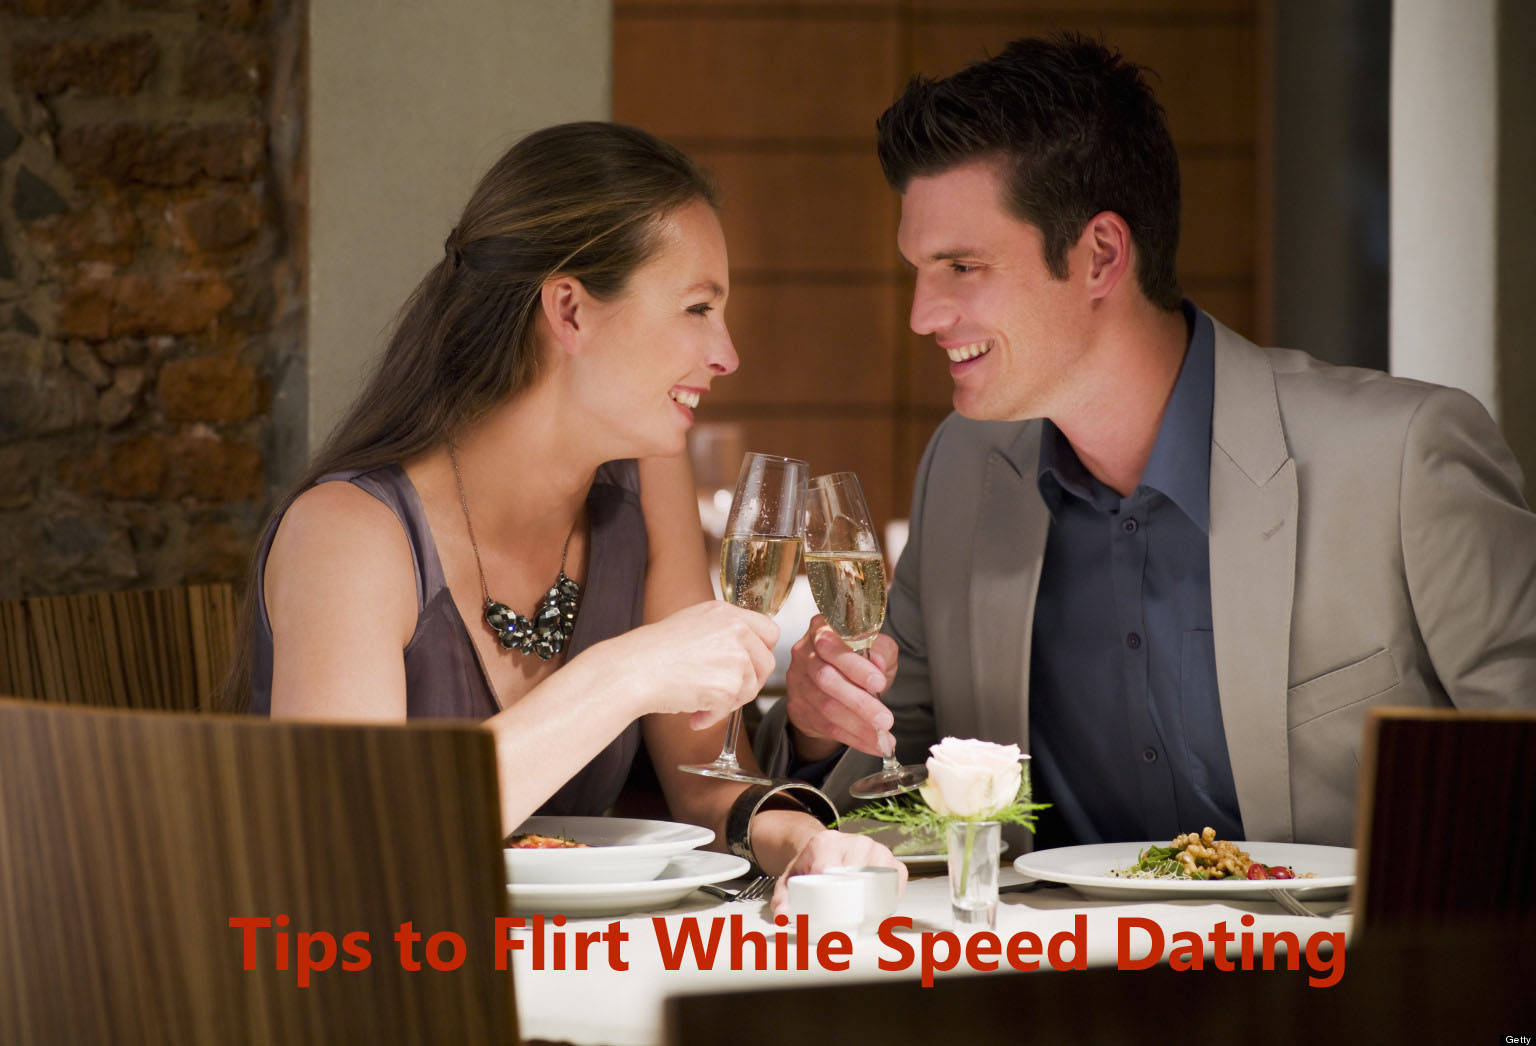 What To Talk About While Speed Dating